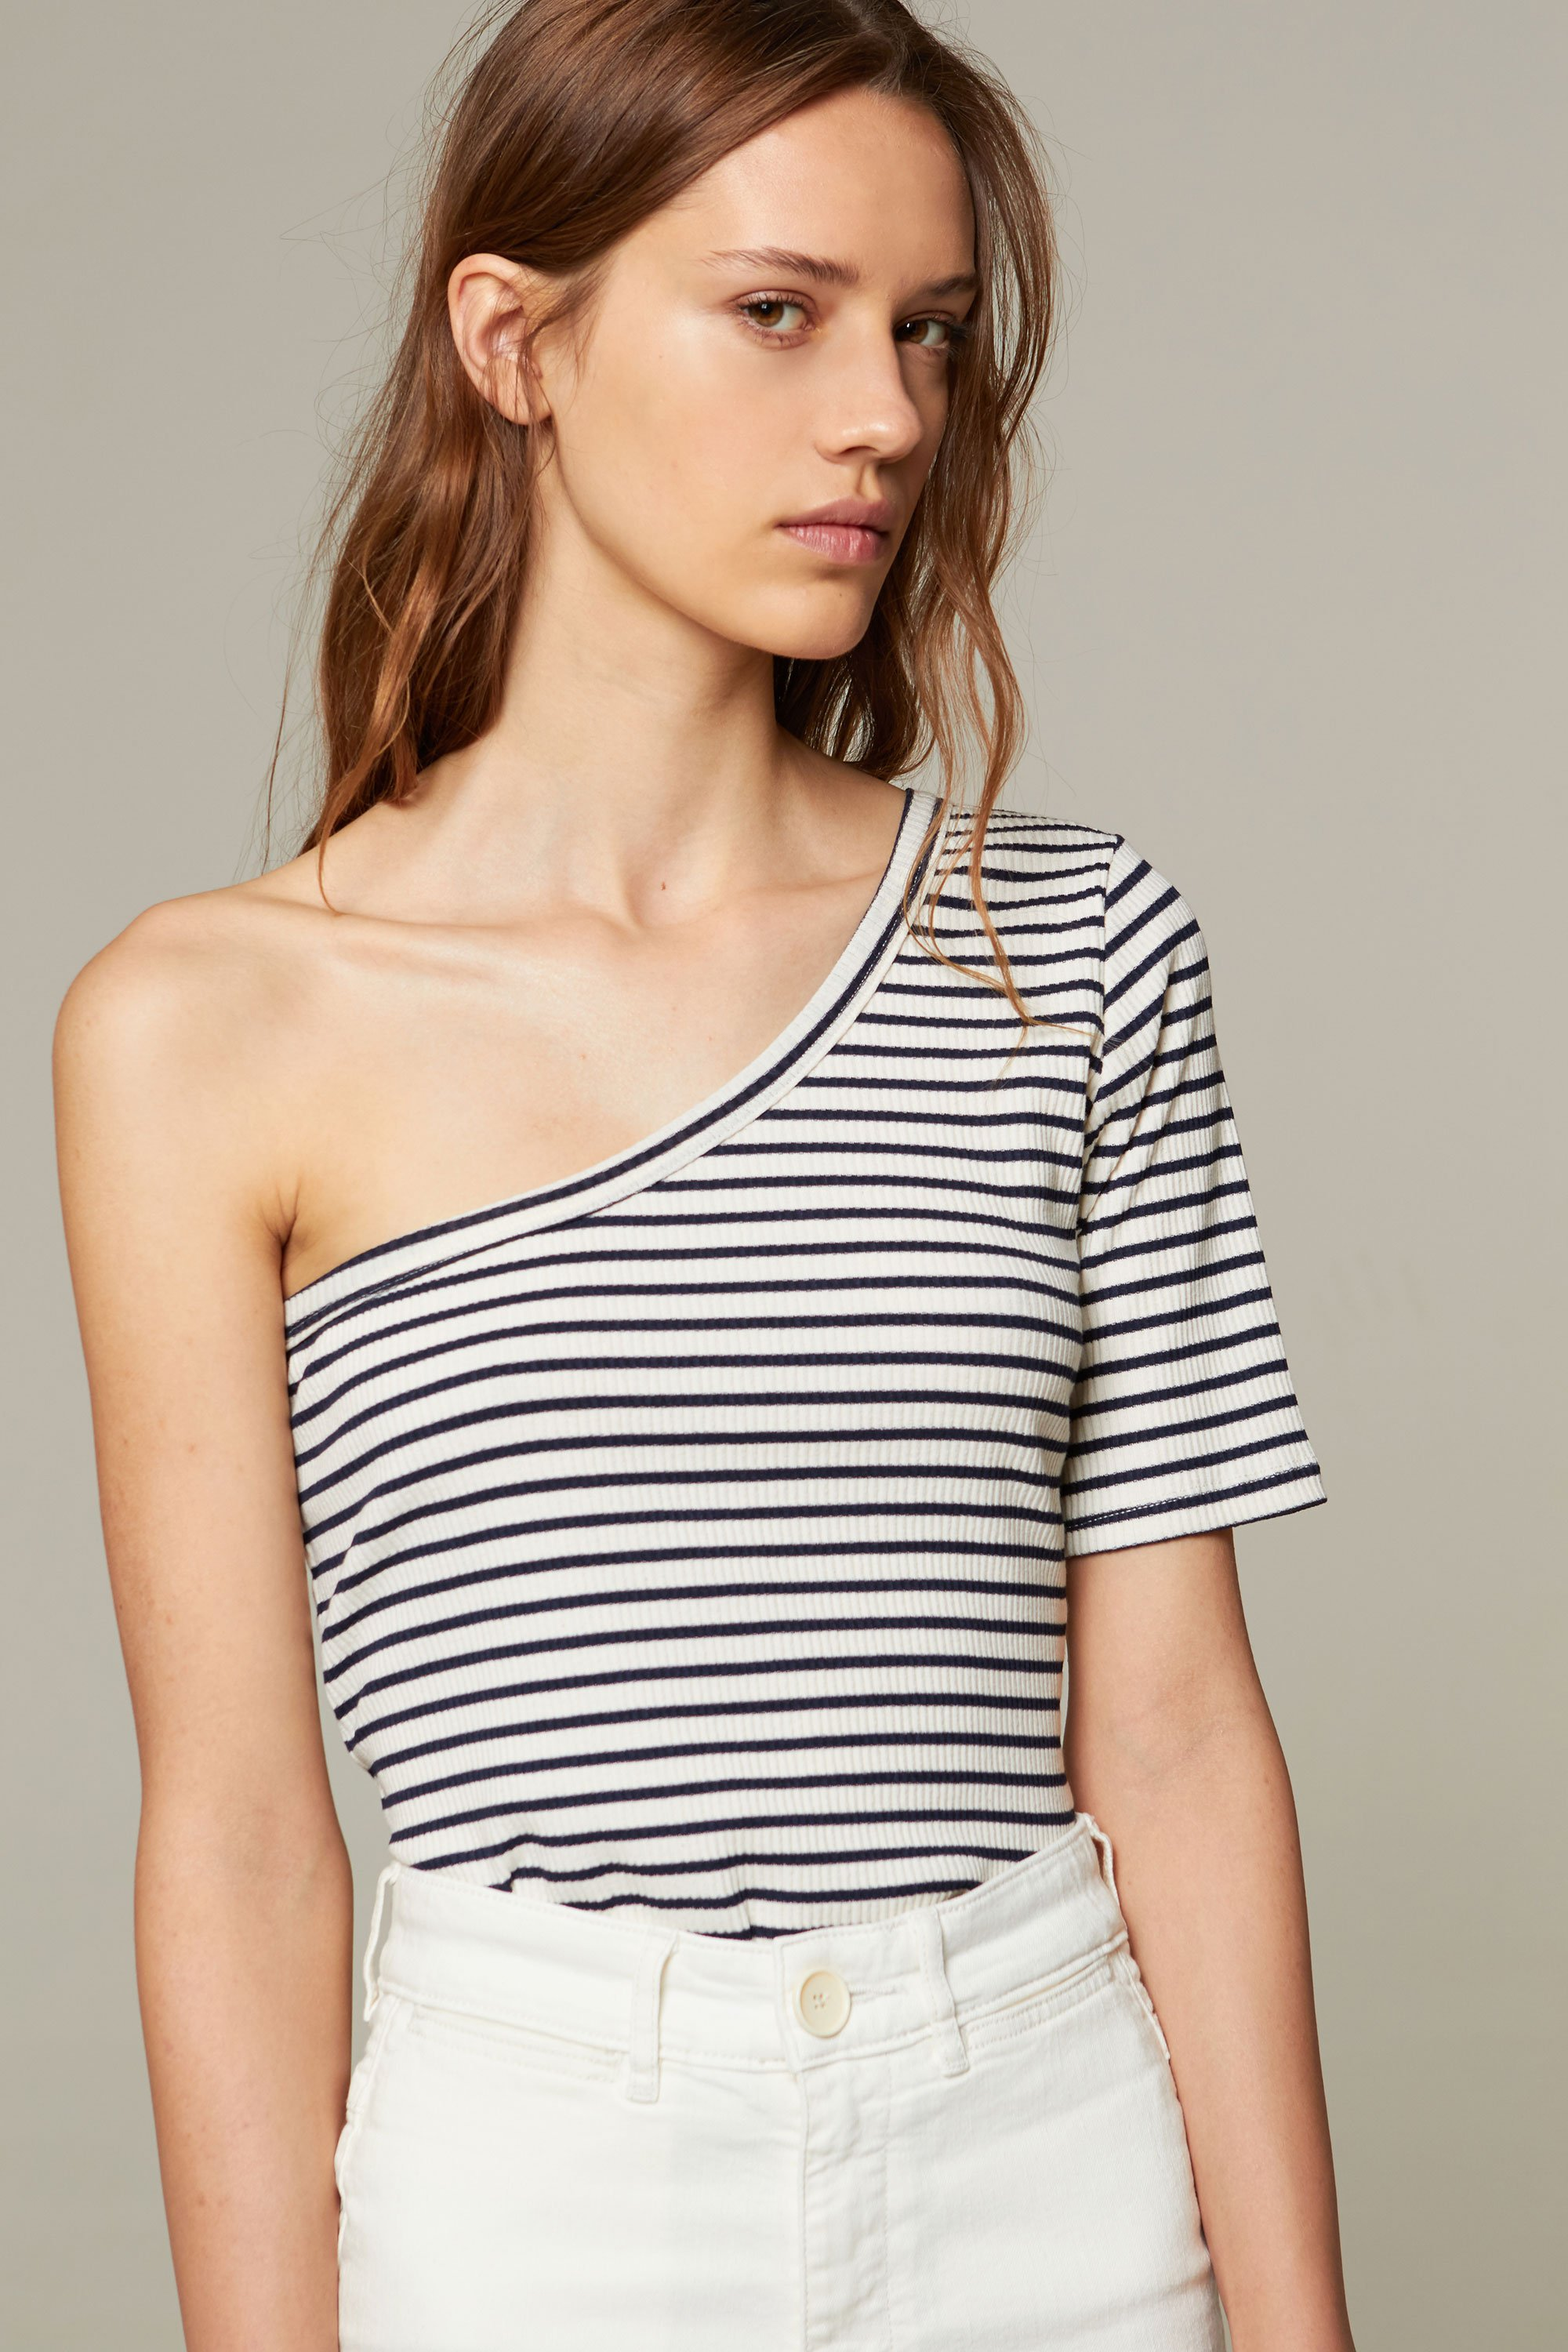 Ras top navy stripes from thegreenlabels.com